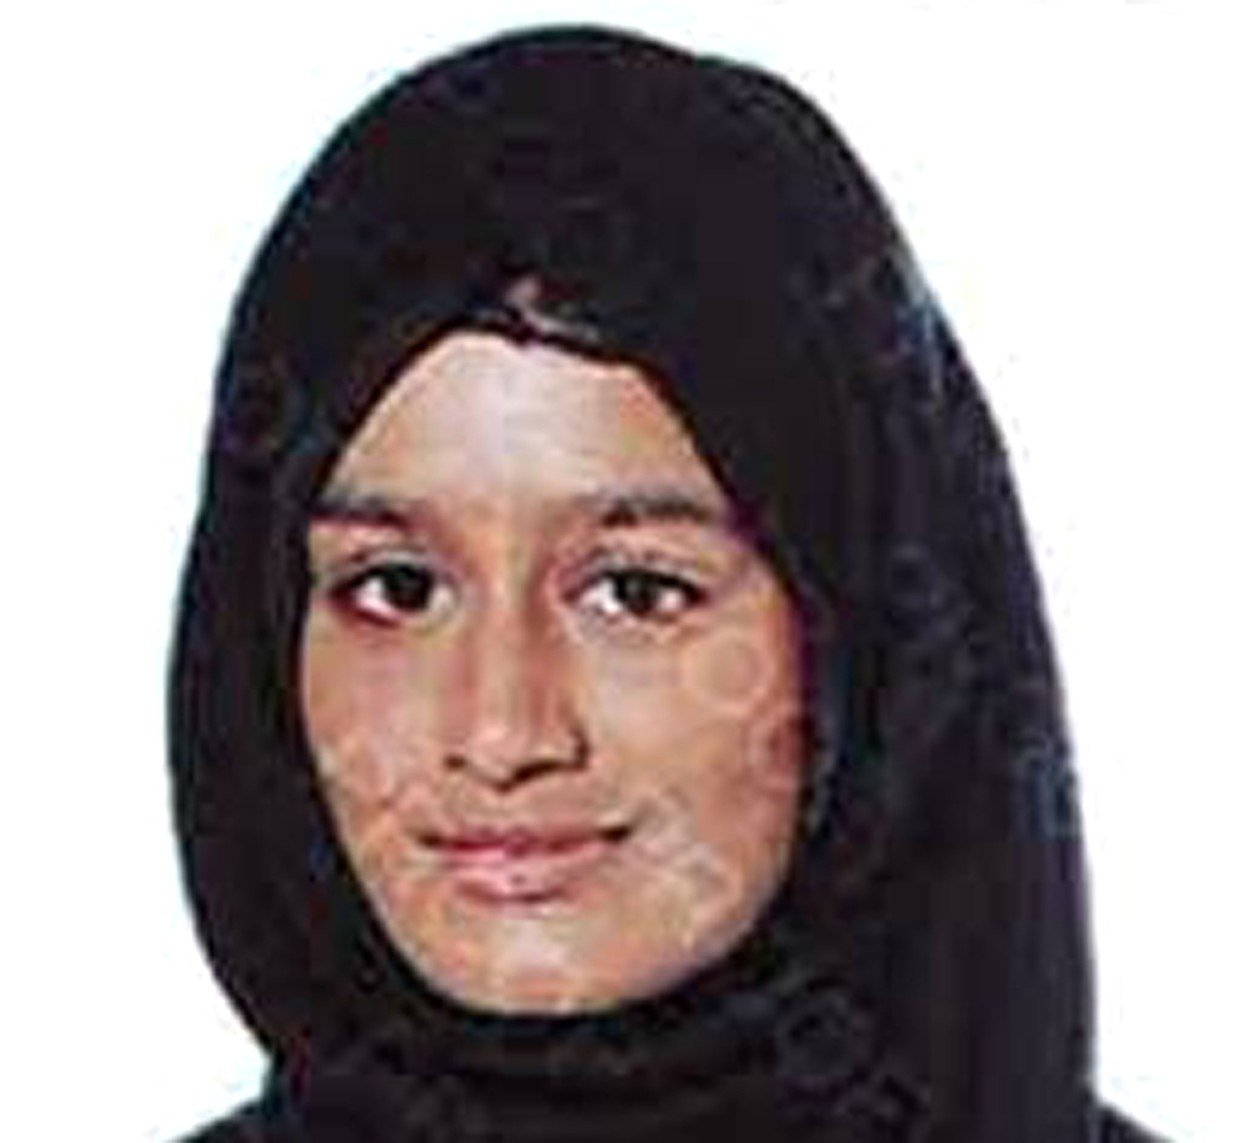 BEST QUALITY AVAILABLE Undated handout photo issued by the Metropolitan Police of east London schoolgirl Shamima Begum, who left Britain as a 15-year-old to join the Islamic State group and is now heavily pregnant and wants to come home., Image: 413783988, License: Rights-managed, Restrictions: FILE PHOTO, Model Release: no, Credit line: Profimedia, Press Association